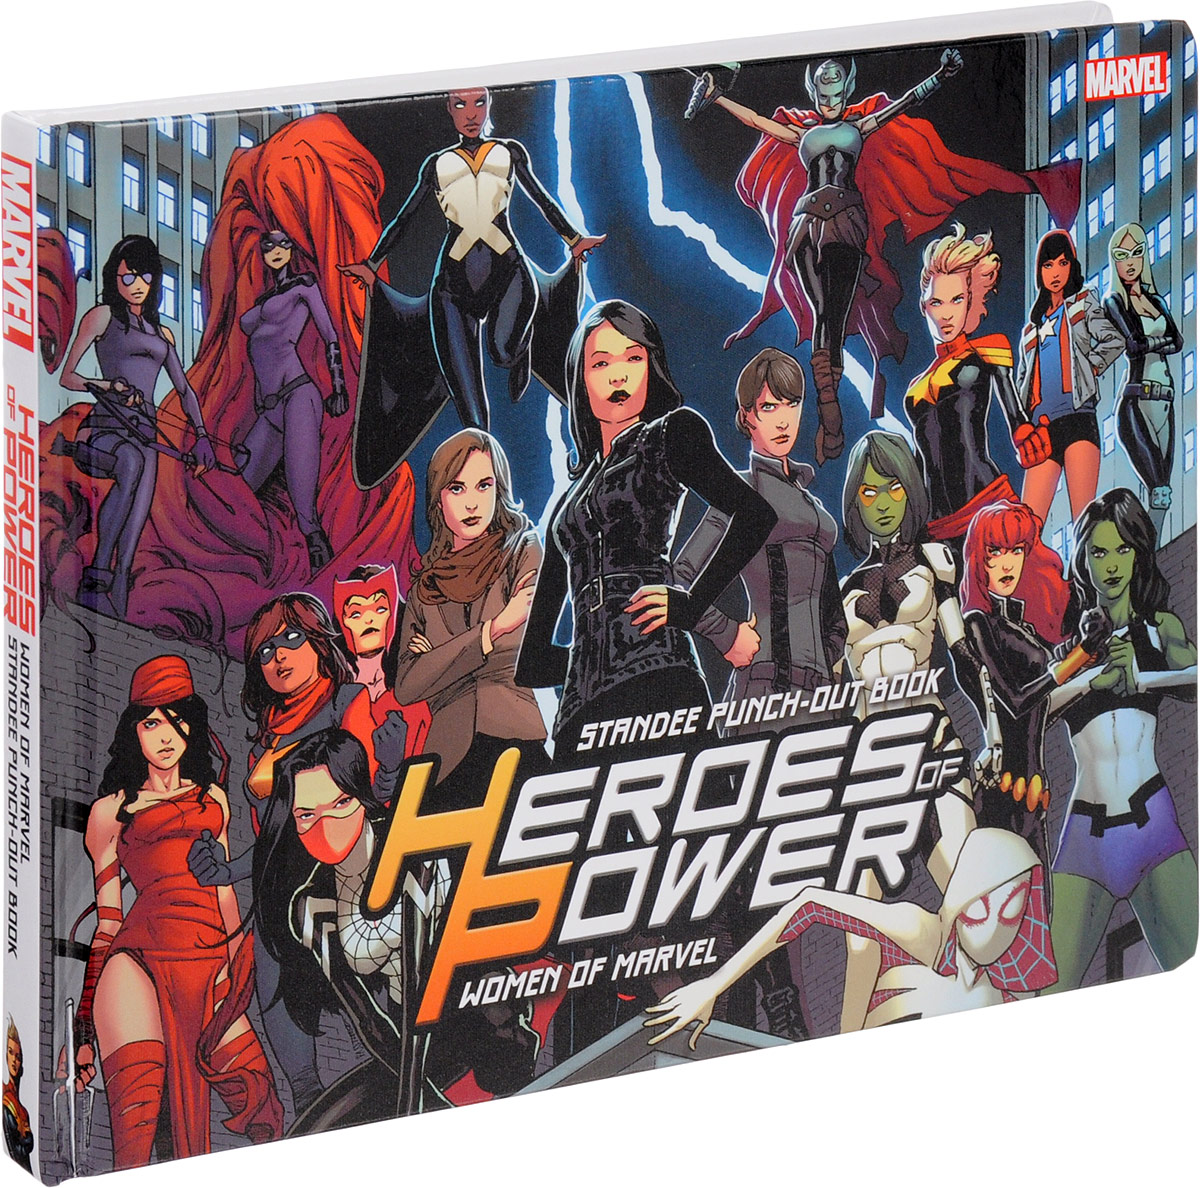 Heroes of Power: The Women of Marvel: Standee Punch-Out Book heretics and heroes